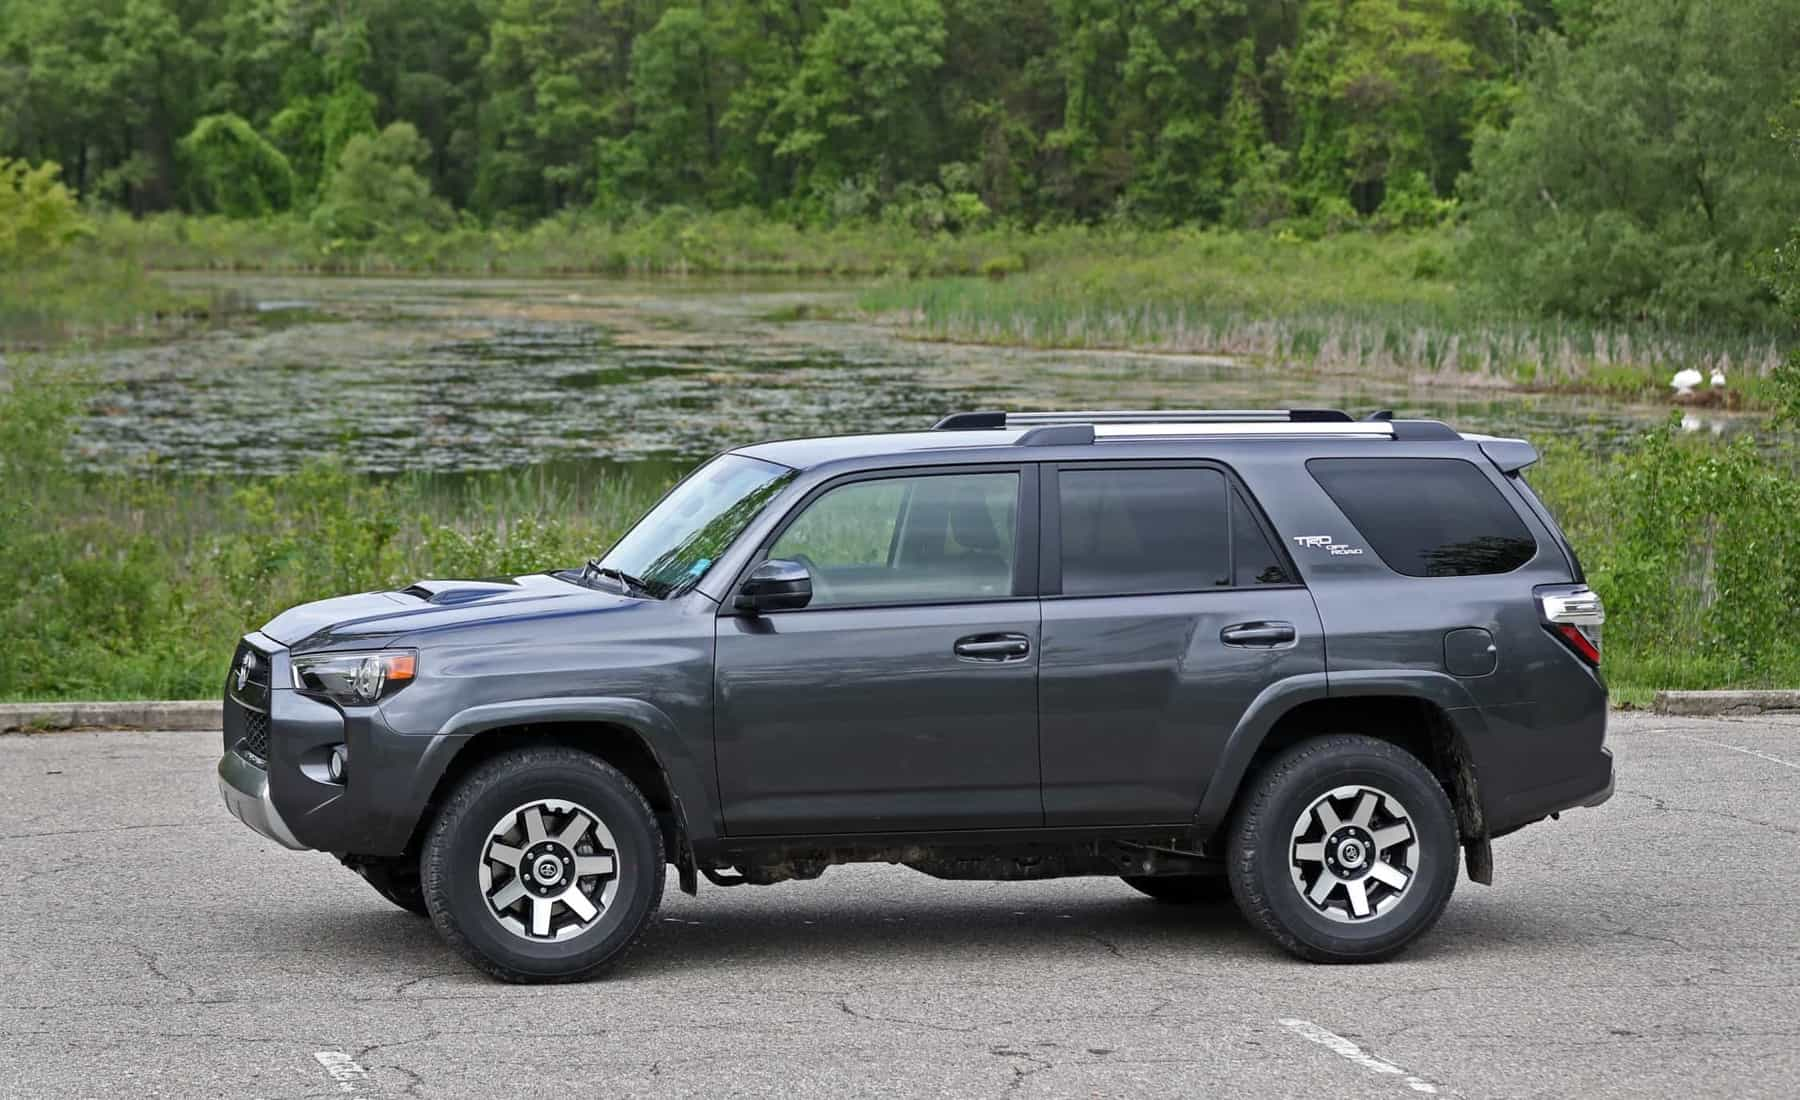 2017 Toyota 4Runner TRD Off Road 4WD Exterior Side View (Photo 36 of 40)